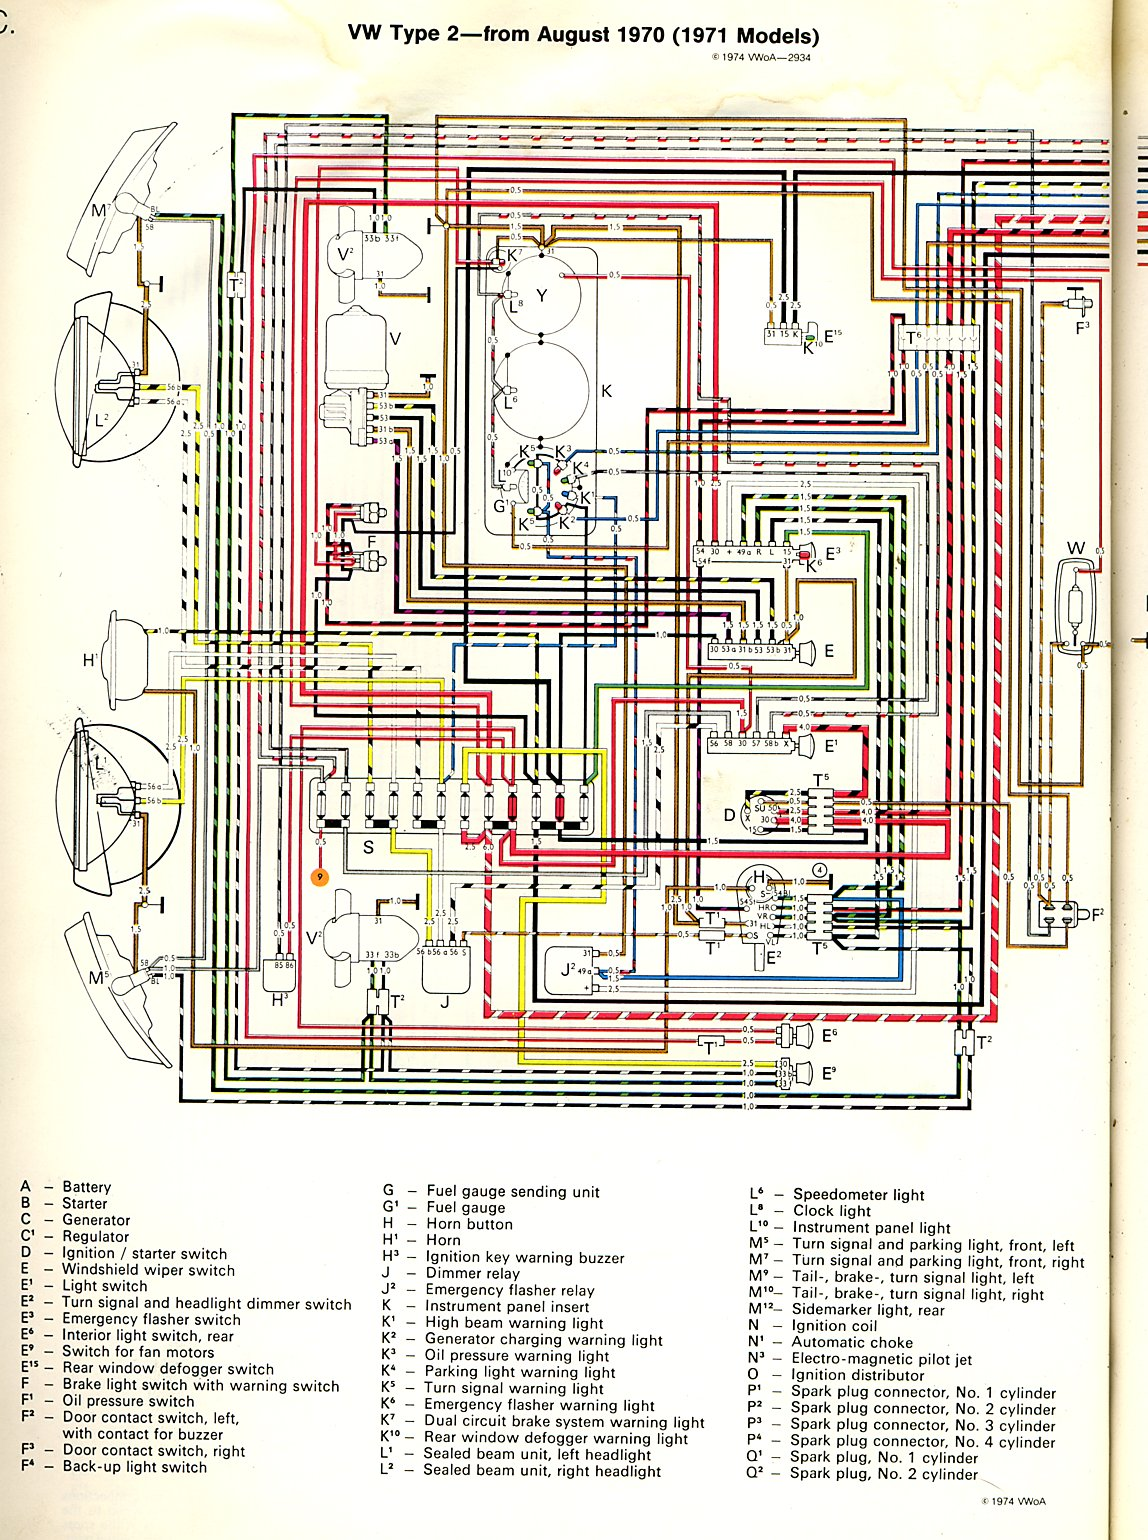 77 Vw Van Wiring Diagram Find Rabbit Harness Bus Diagrams Schematics Rh Alexanderblack Co 1974 Radio 1982 Stereo